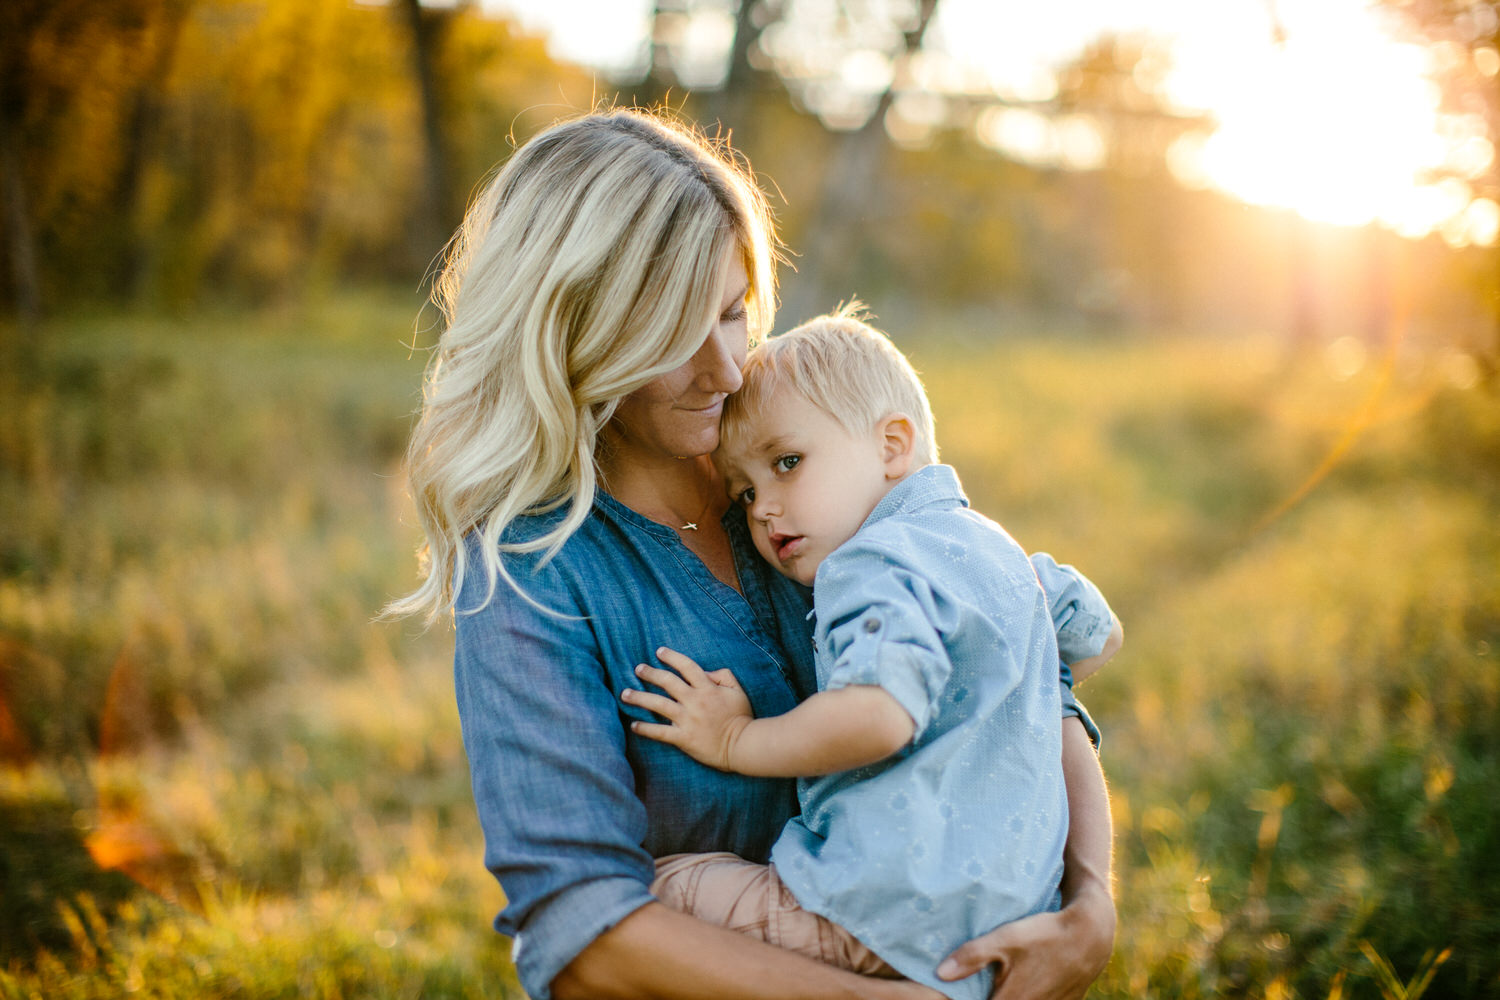 evening sunset photoshoot in Calgary Fish Creek park with a boy in the moms arms